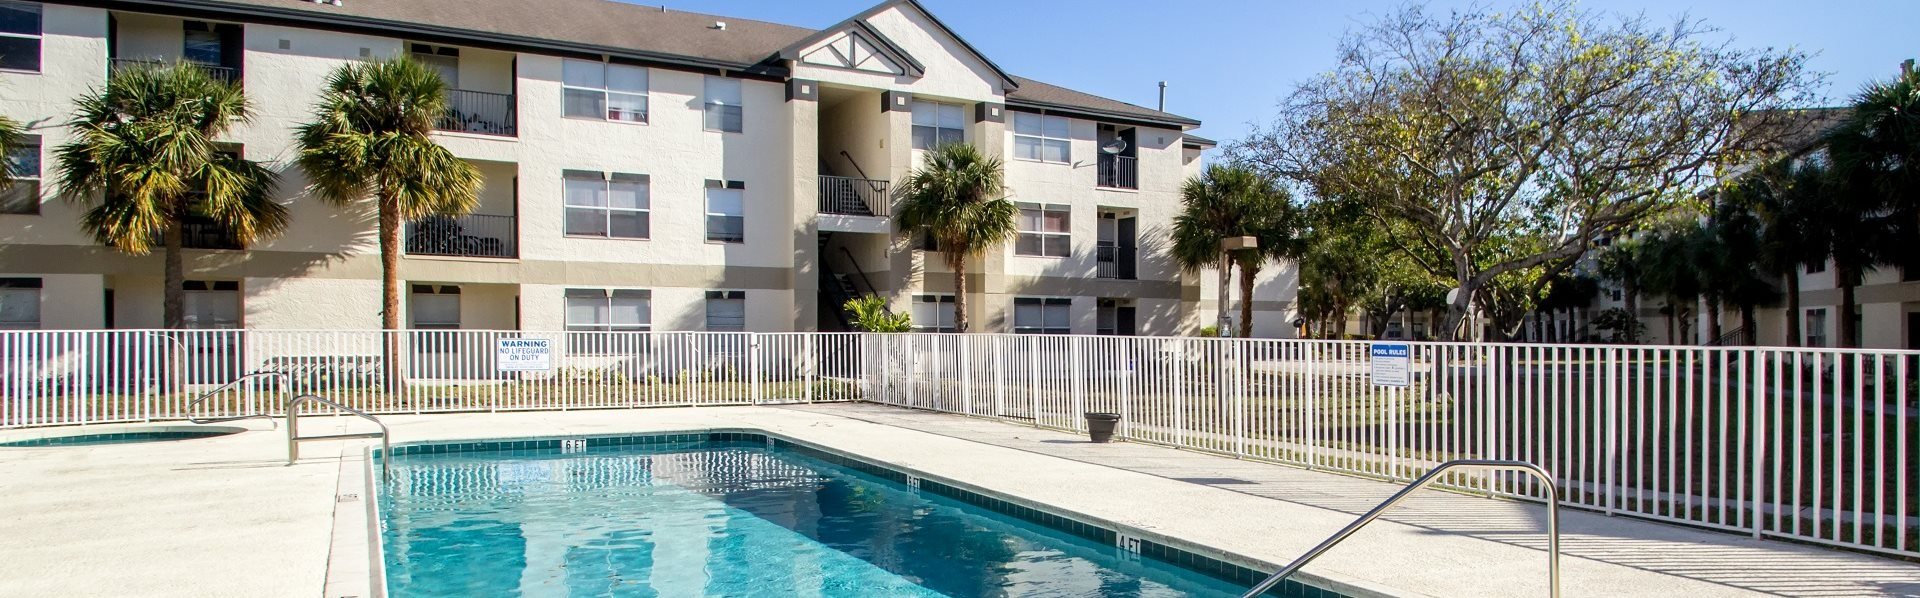 Royal Poinciana Apartment Homes